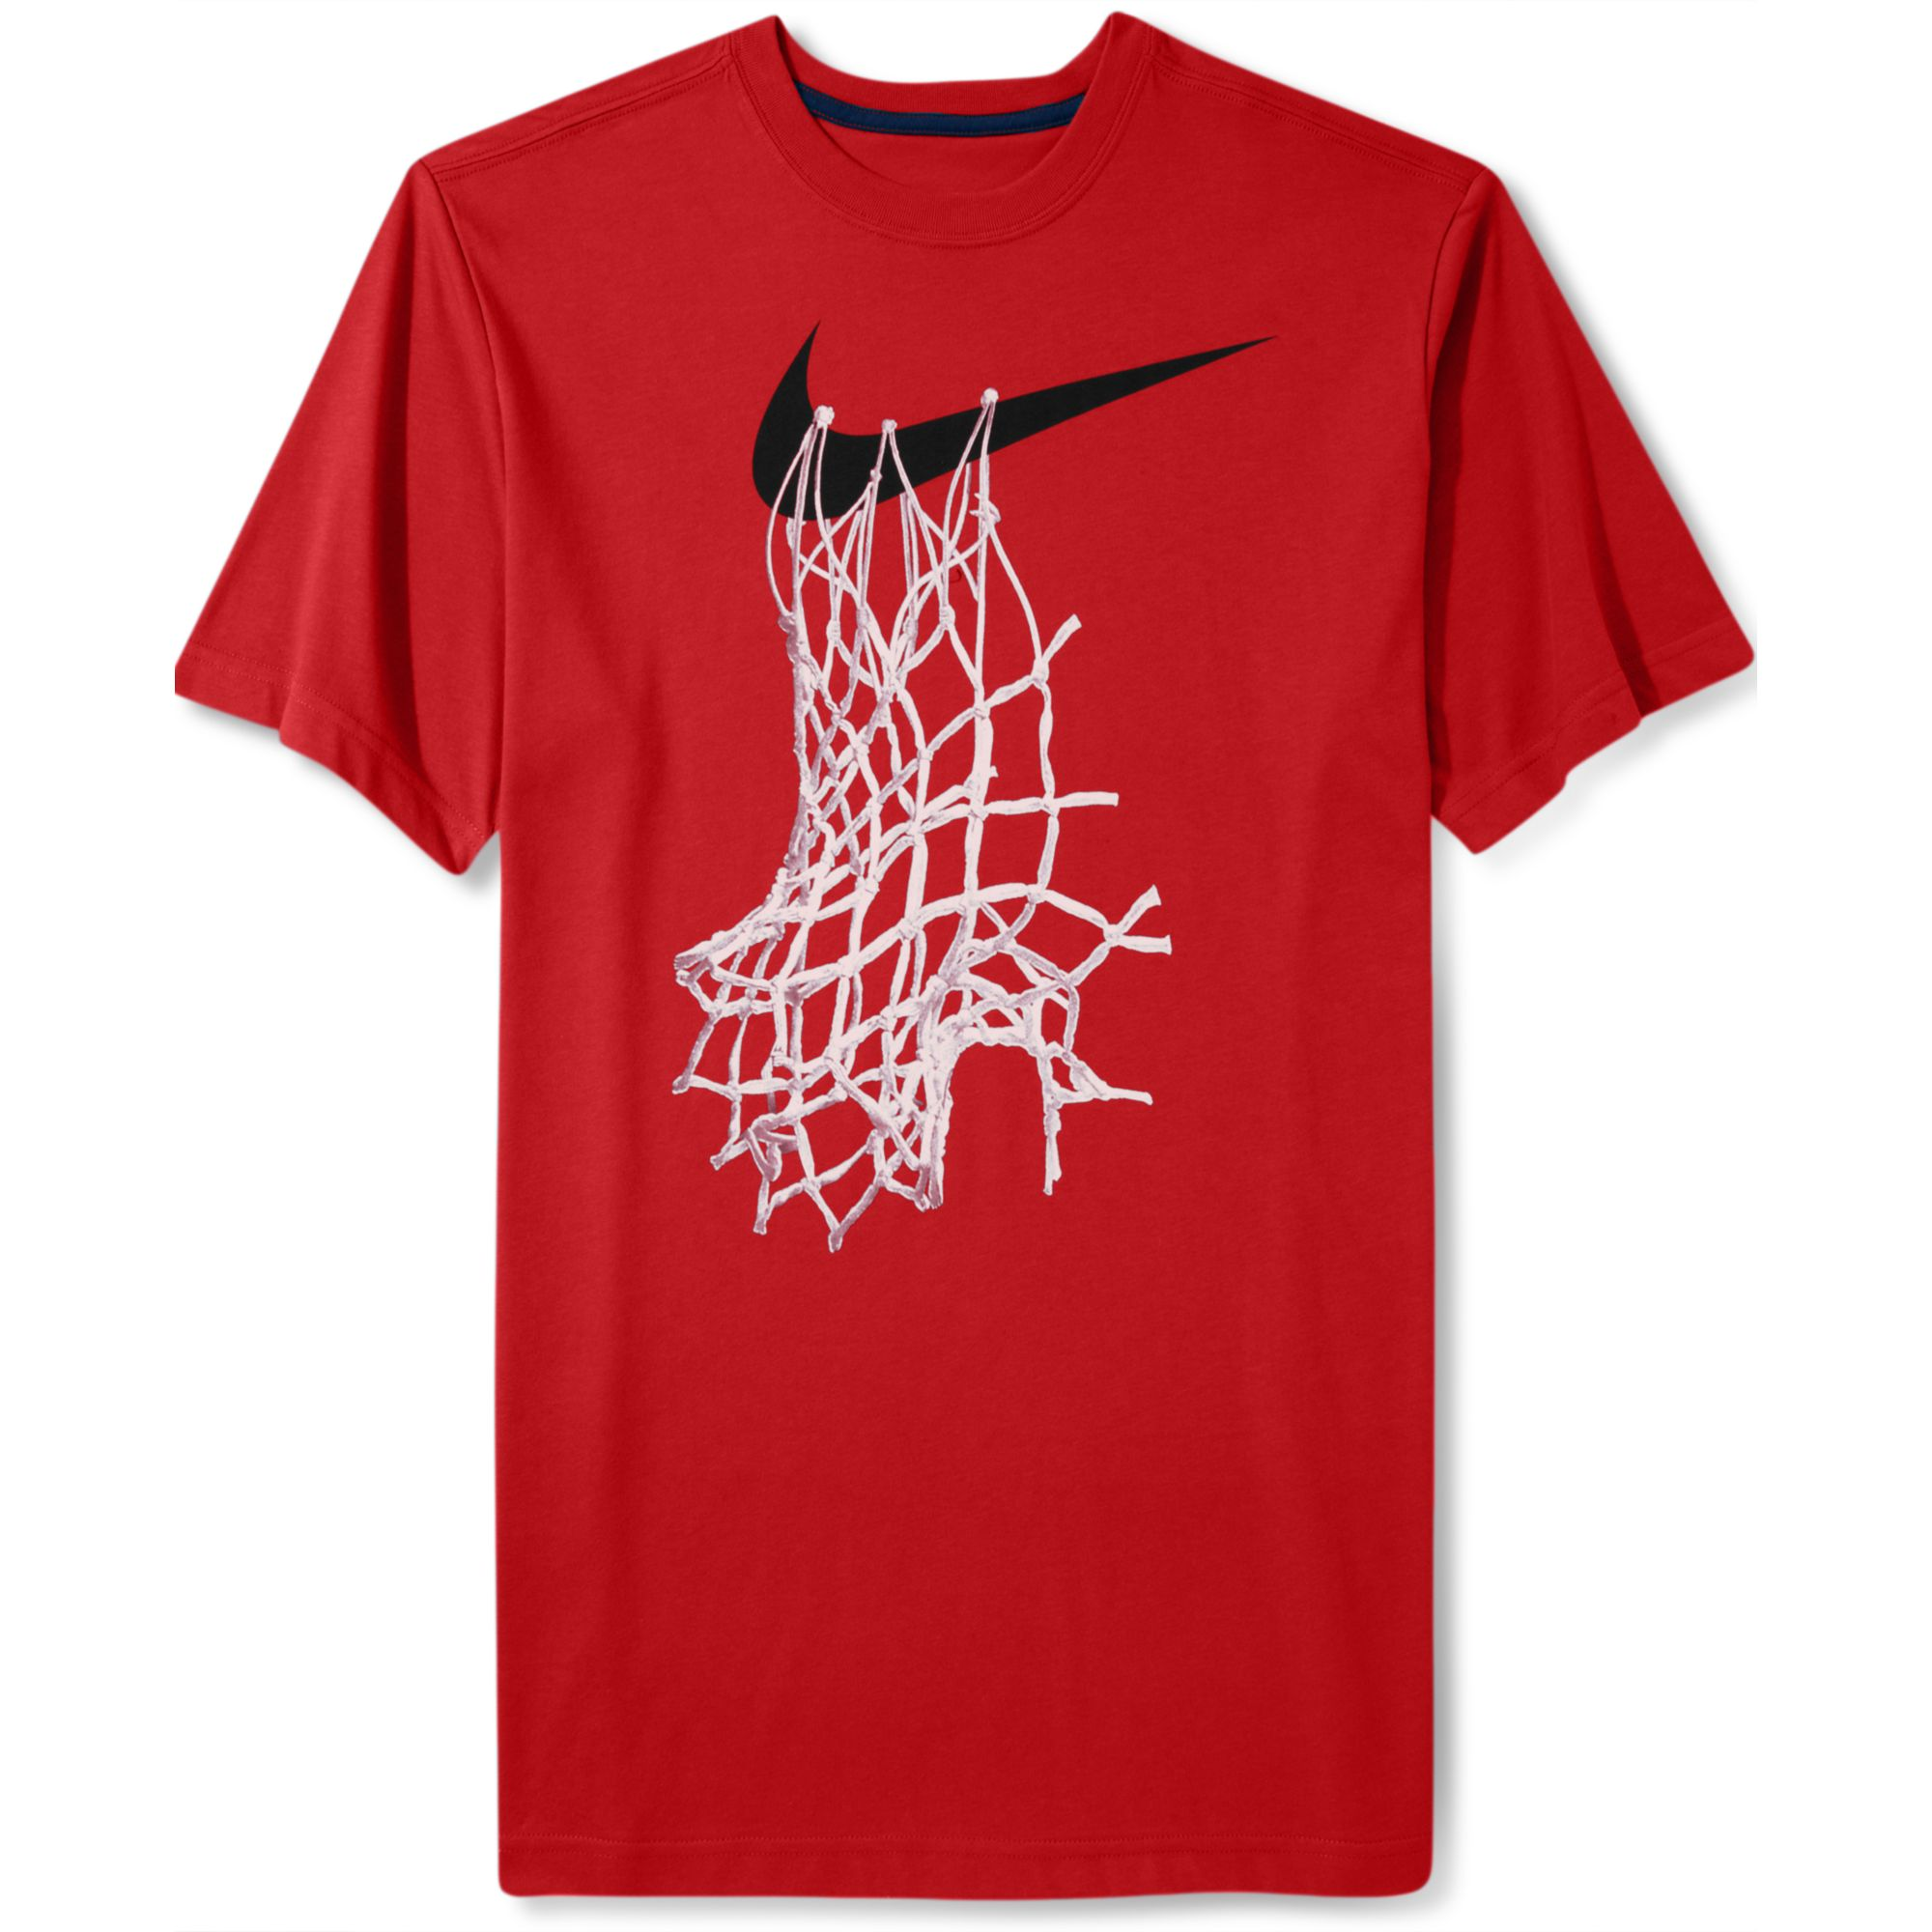 nike shortsleeve graphic basketball net tshirt in red for men lyst. Black Bedroom Furniture Sets. Home Design Ideas